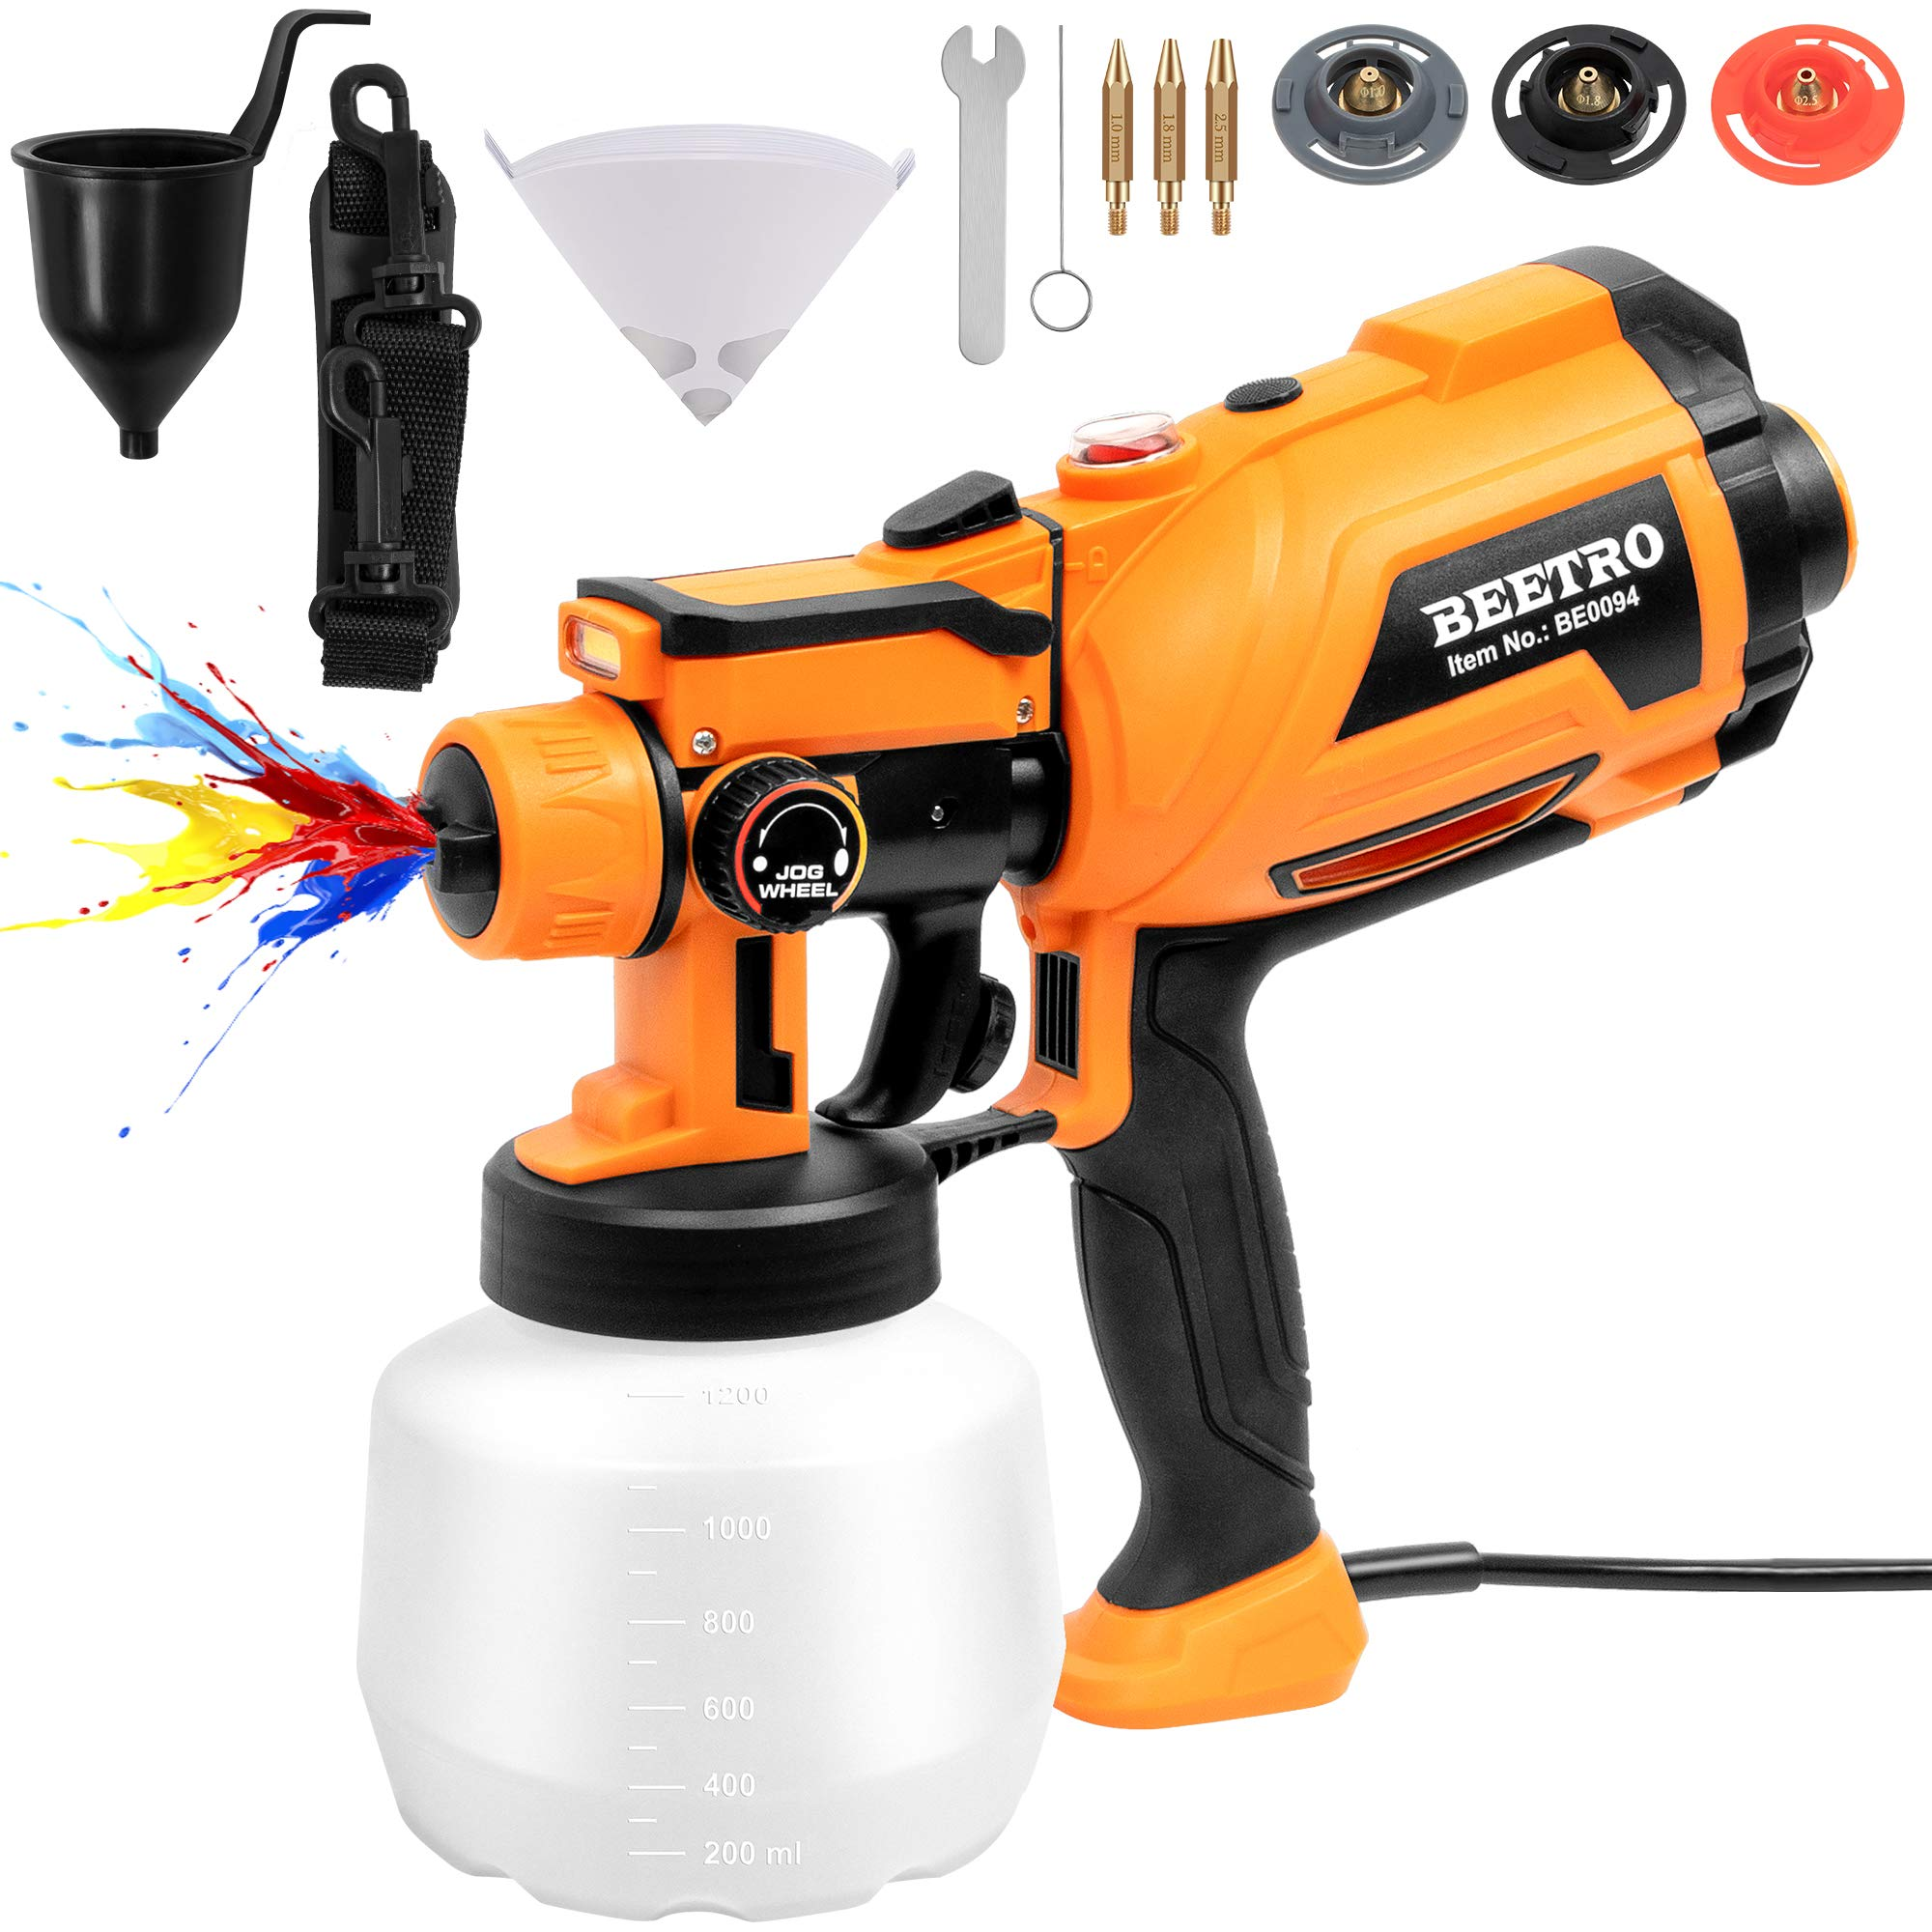 BEETRO Paint Spray Gun 550W High Power 450ml/min with 3 Premium Copper Nozzles and 10pcs 190 Micron Paint Strainers, 1200ml Container HVLP Electric Sprayer for Home Easy Spraying and Cleaning